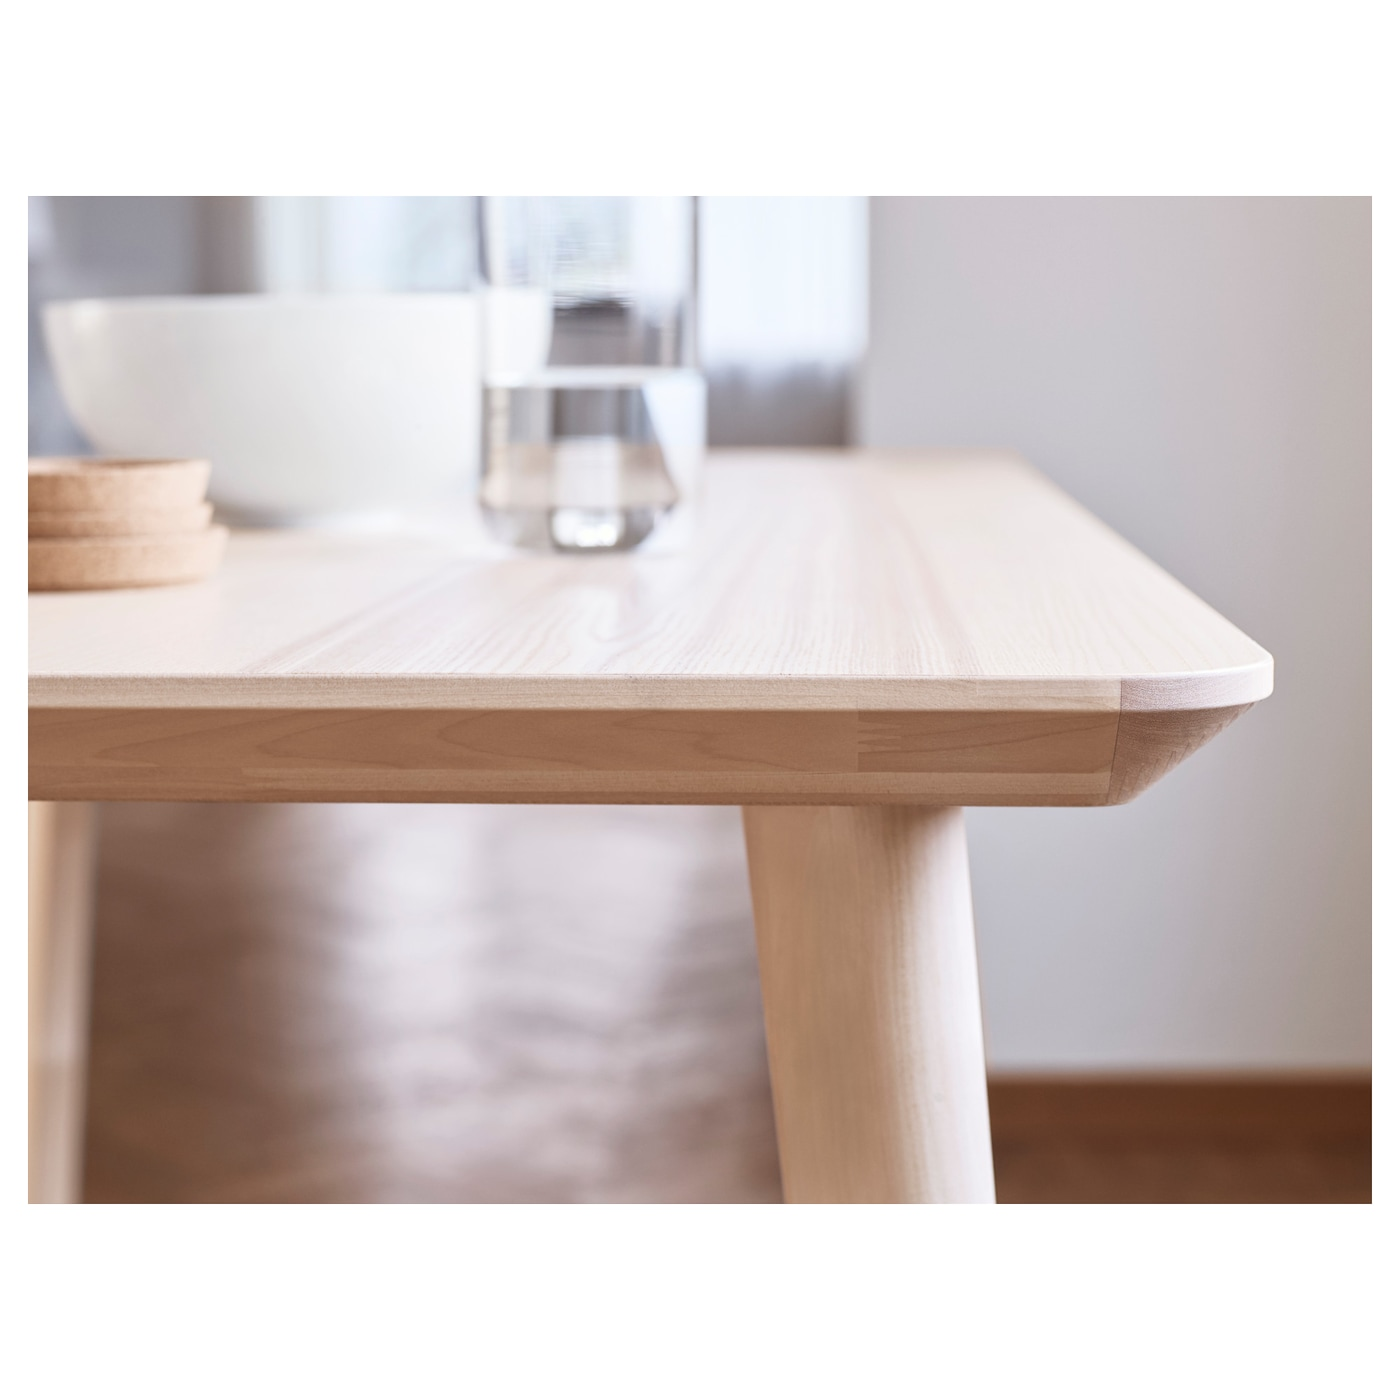 Lisabo coffee table ash veneer 70x70 cm ikea - Table basse carree ikea ...